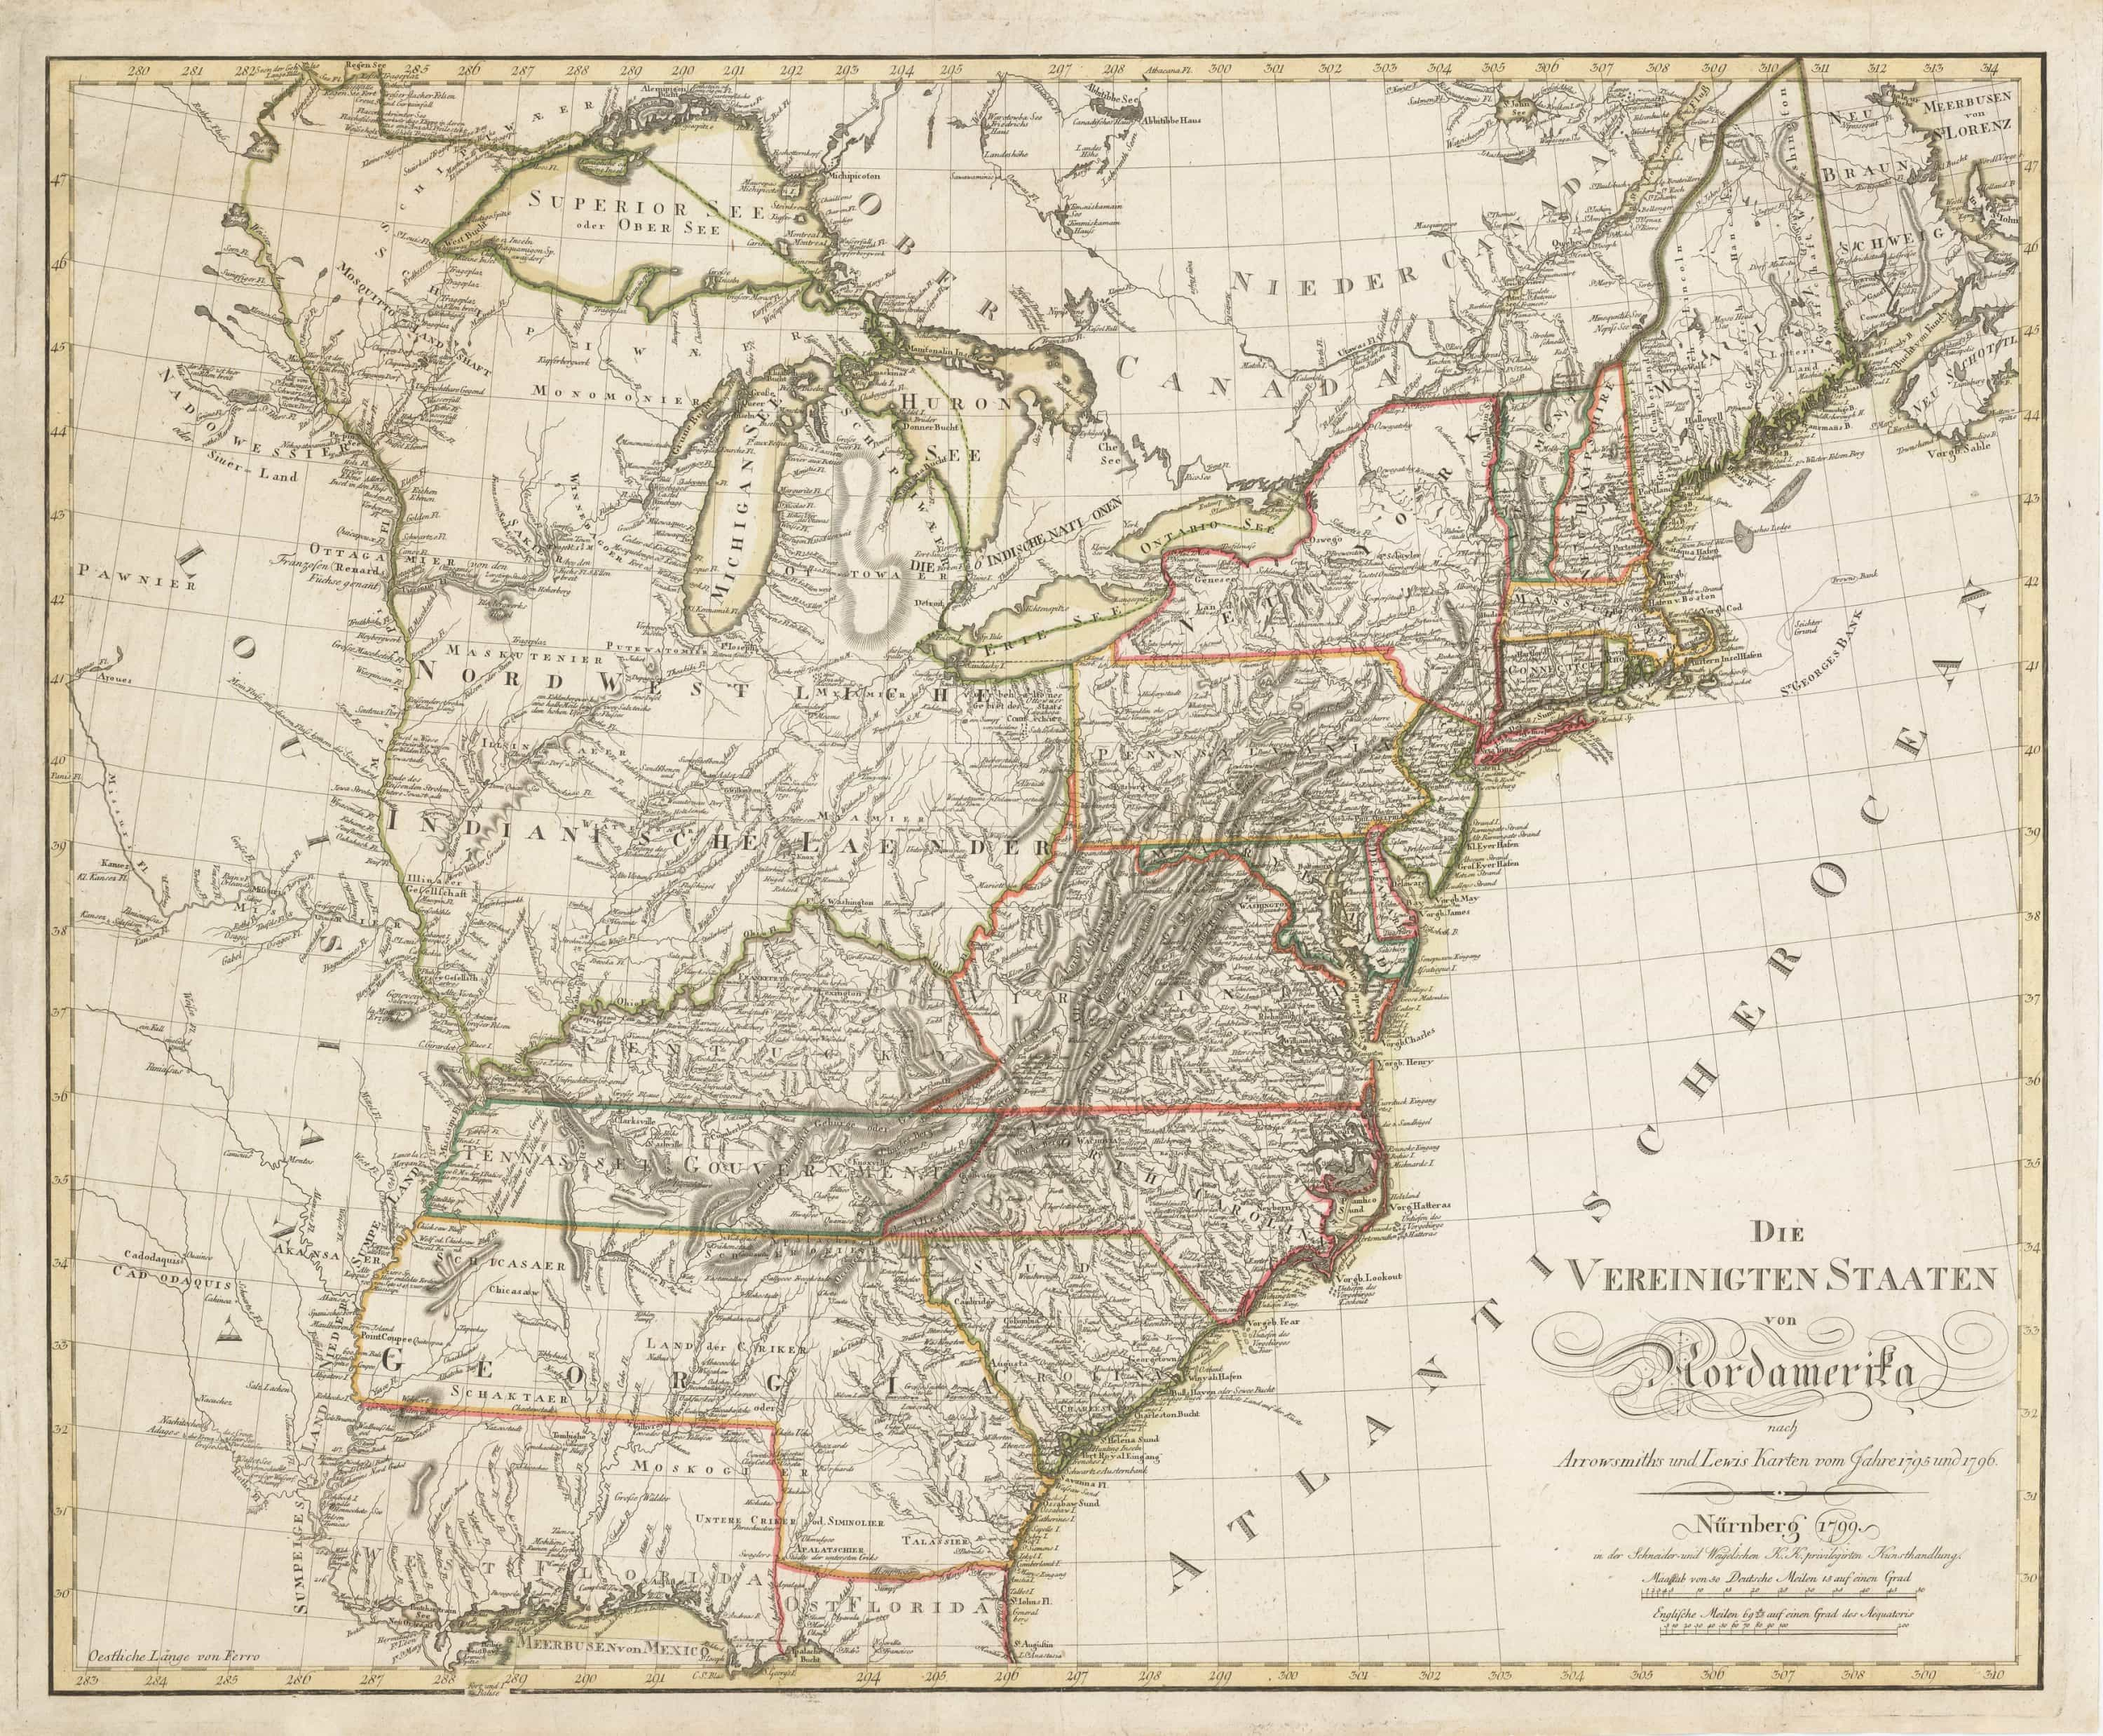 A remarkable Sotzmann map of the United States - Rare ...